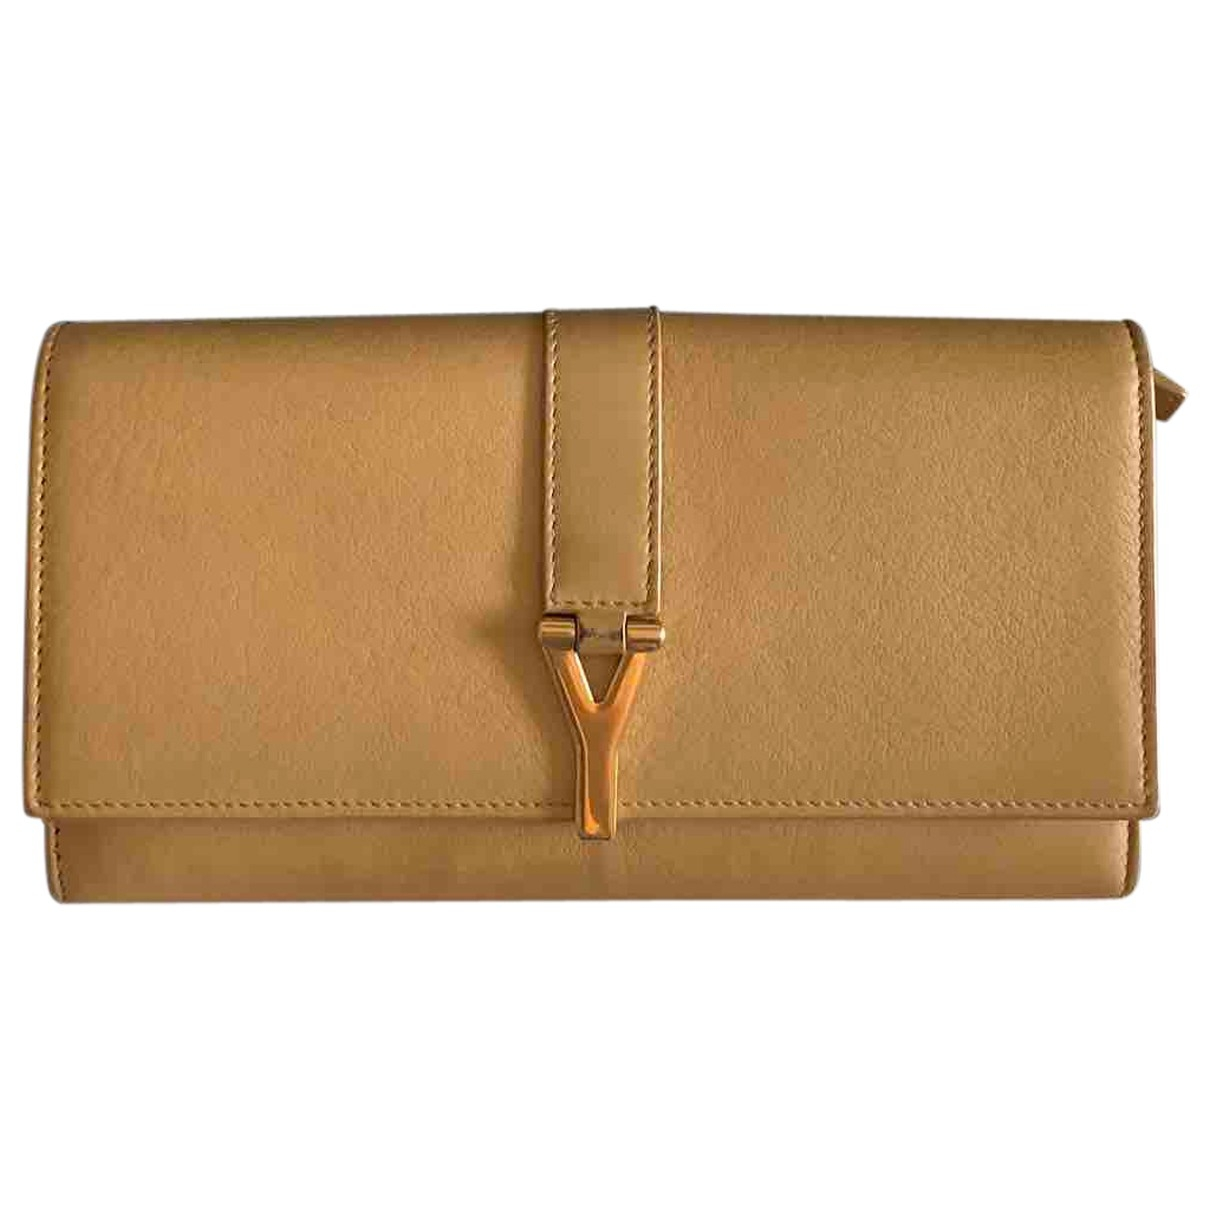 Saint Laurent Chyc Portemonnaie in  Beige Leder